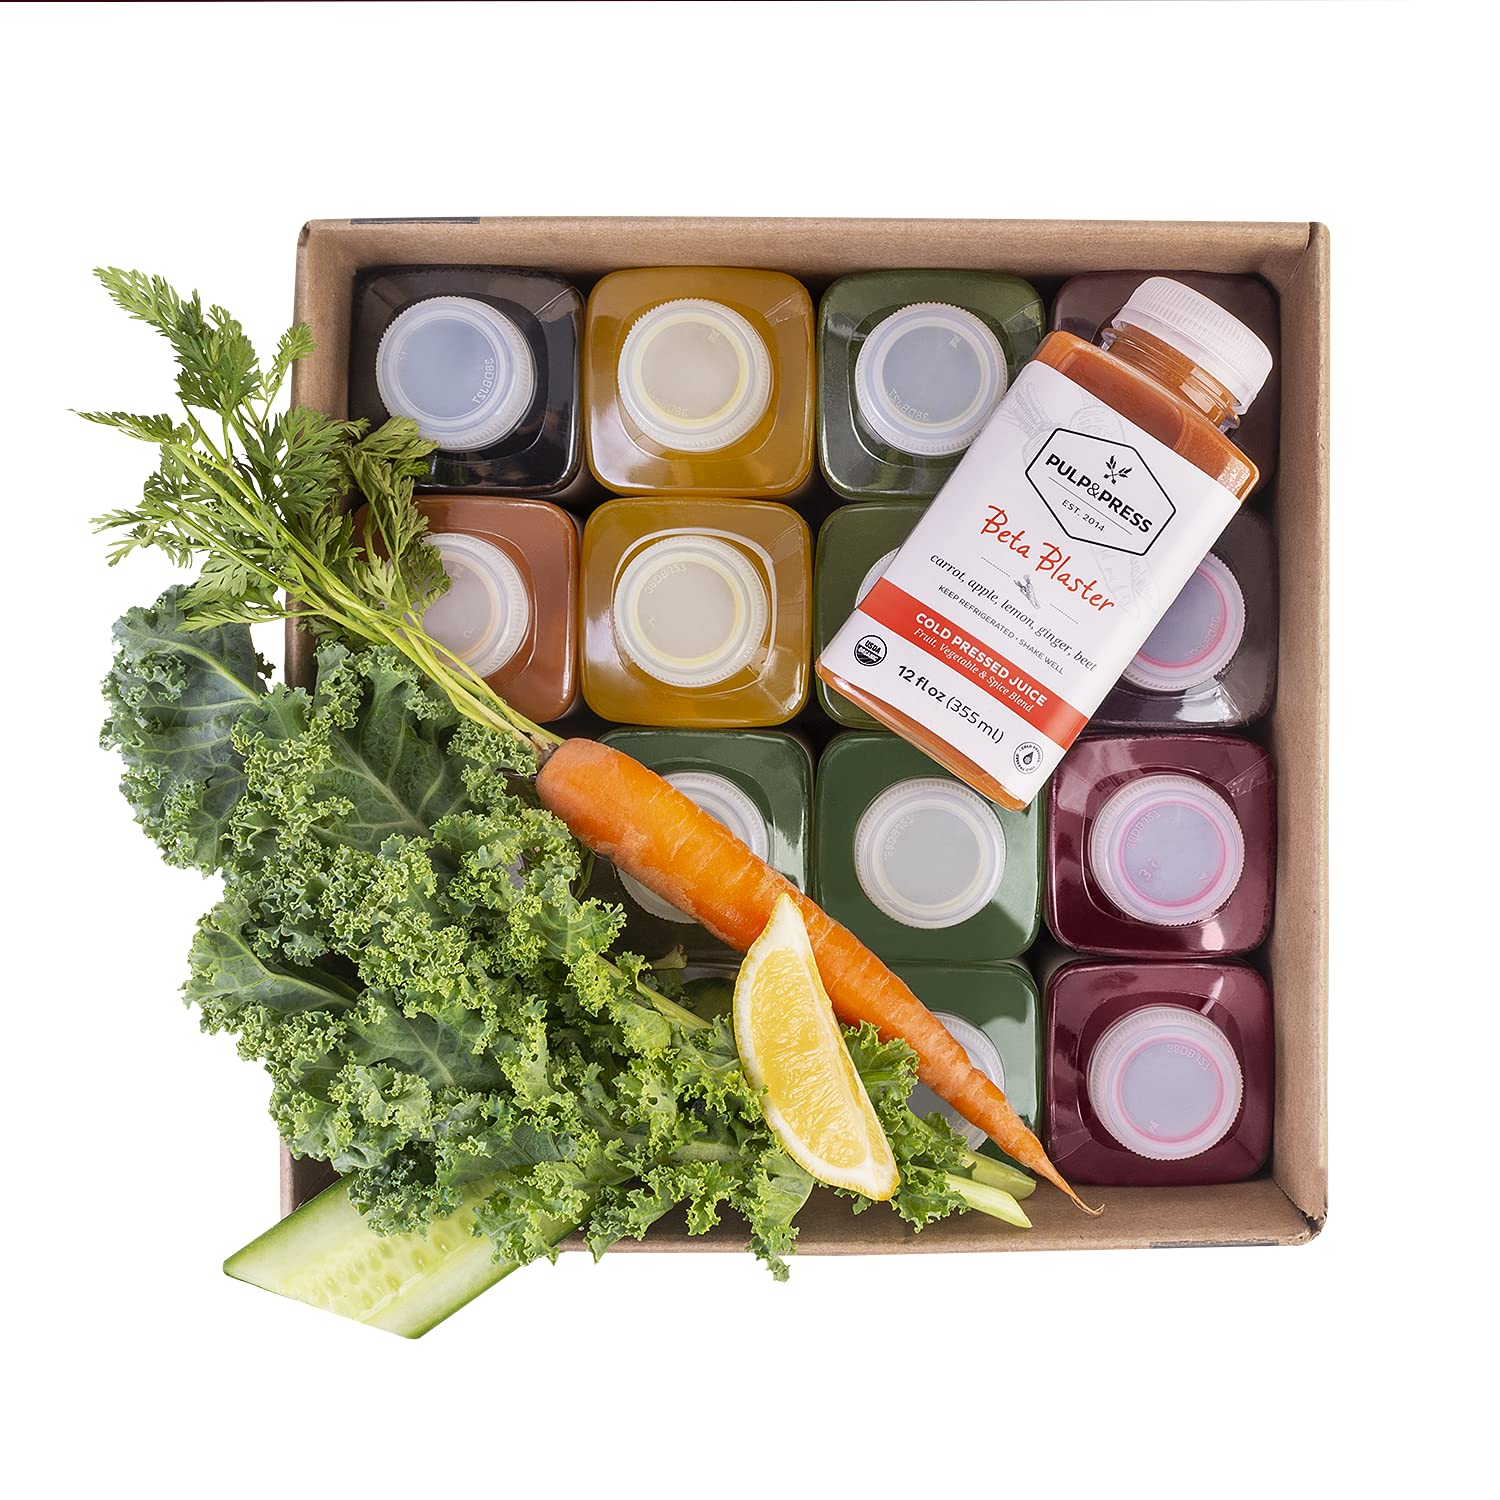 Pulp Press - Beginner Sale Special Price Organic and Vegetab trust Fruit Cold Pressed